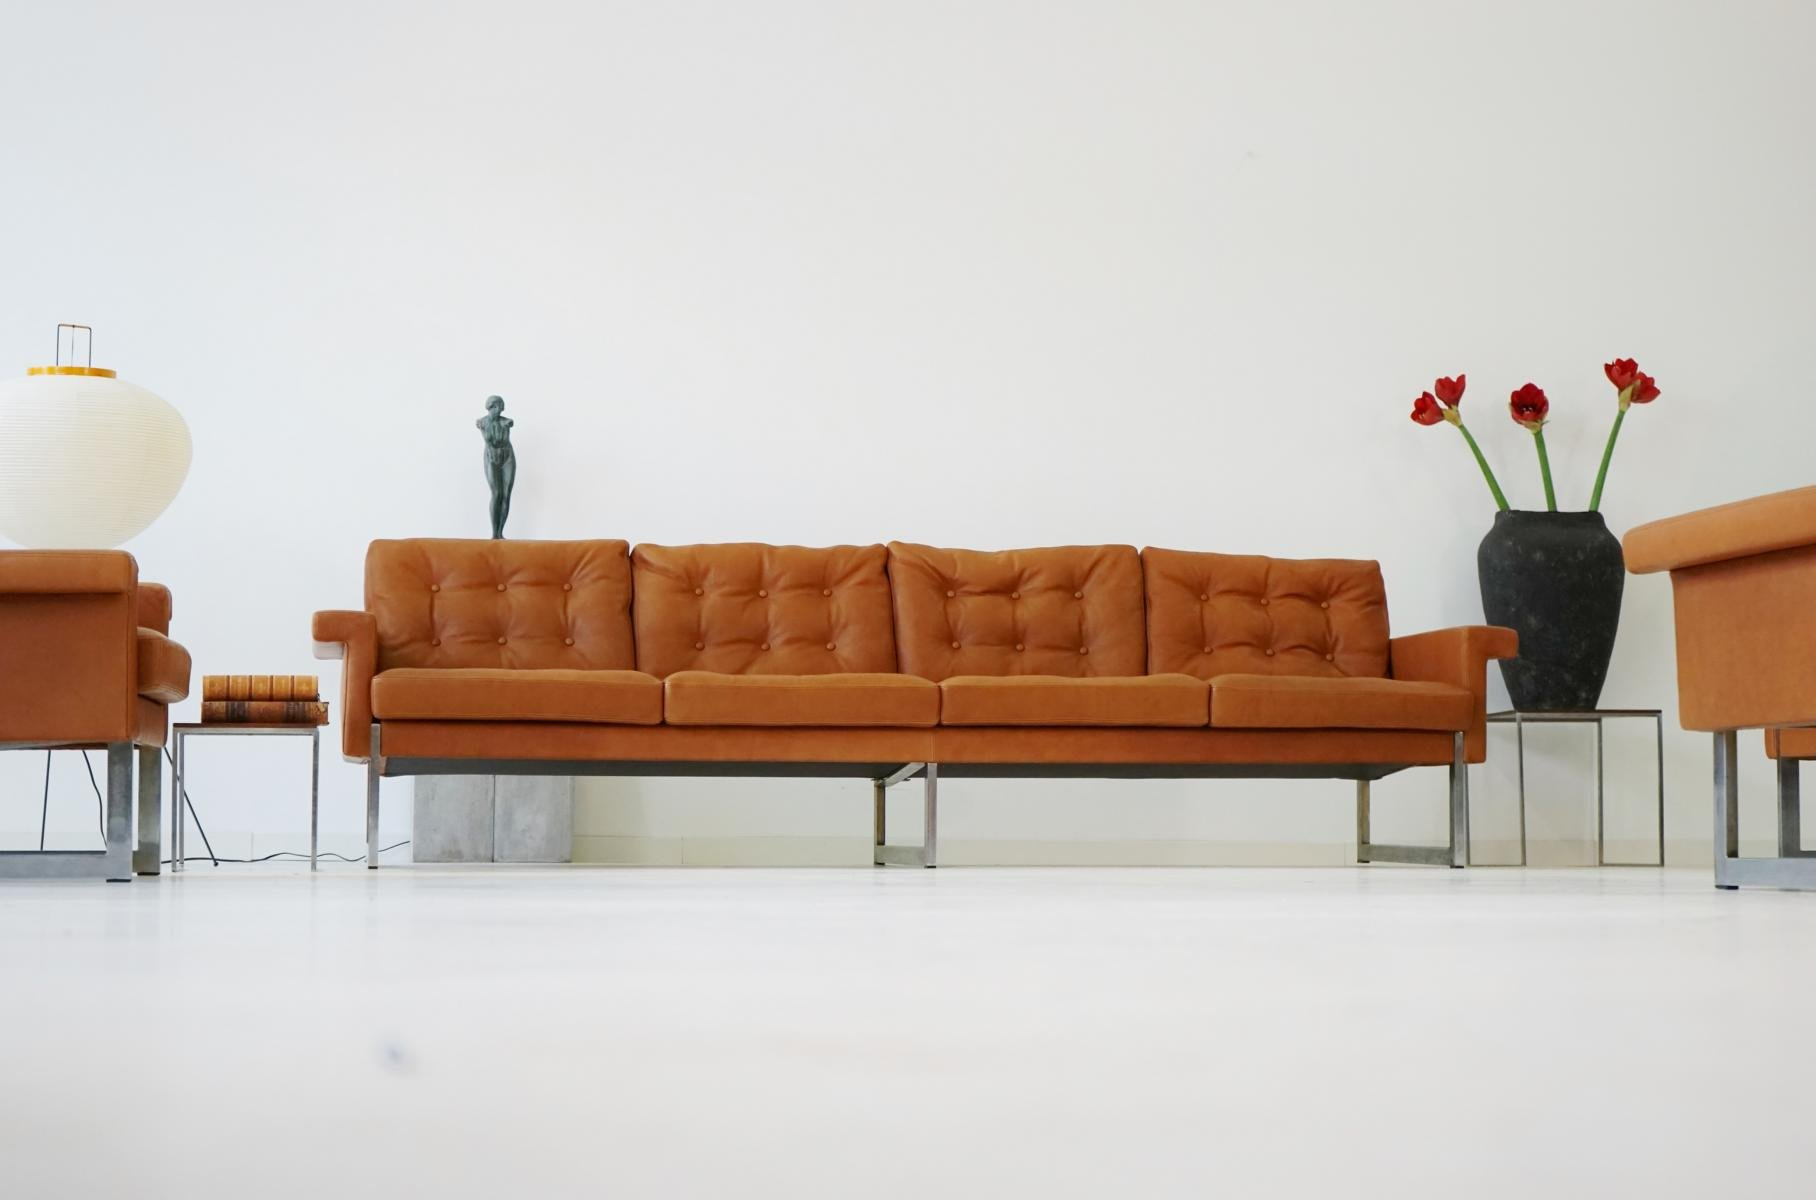 Four Seater Sofa & Lounge Chairs from Kill International 1967 for